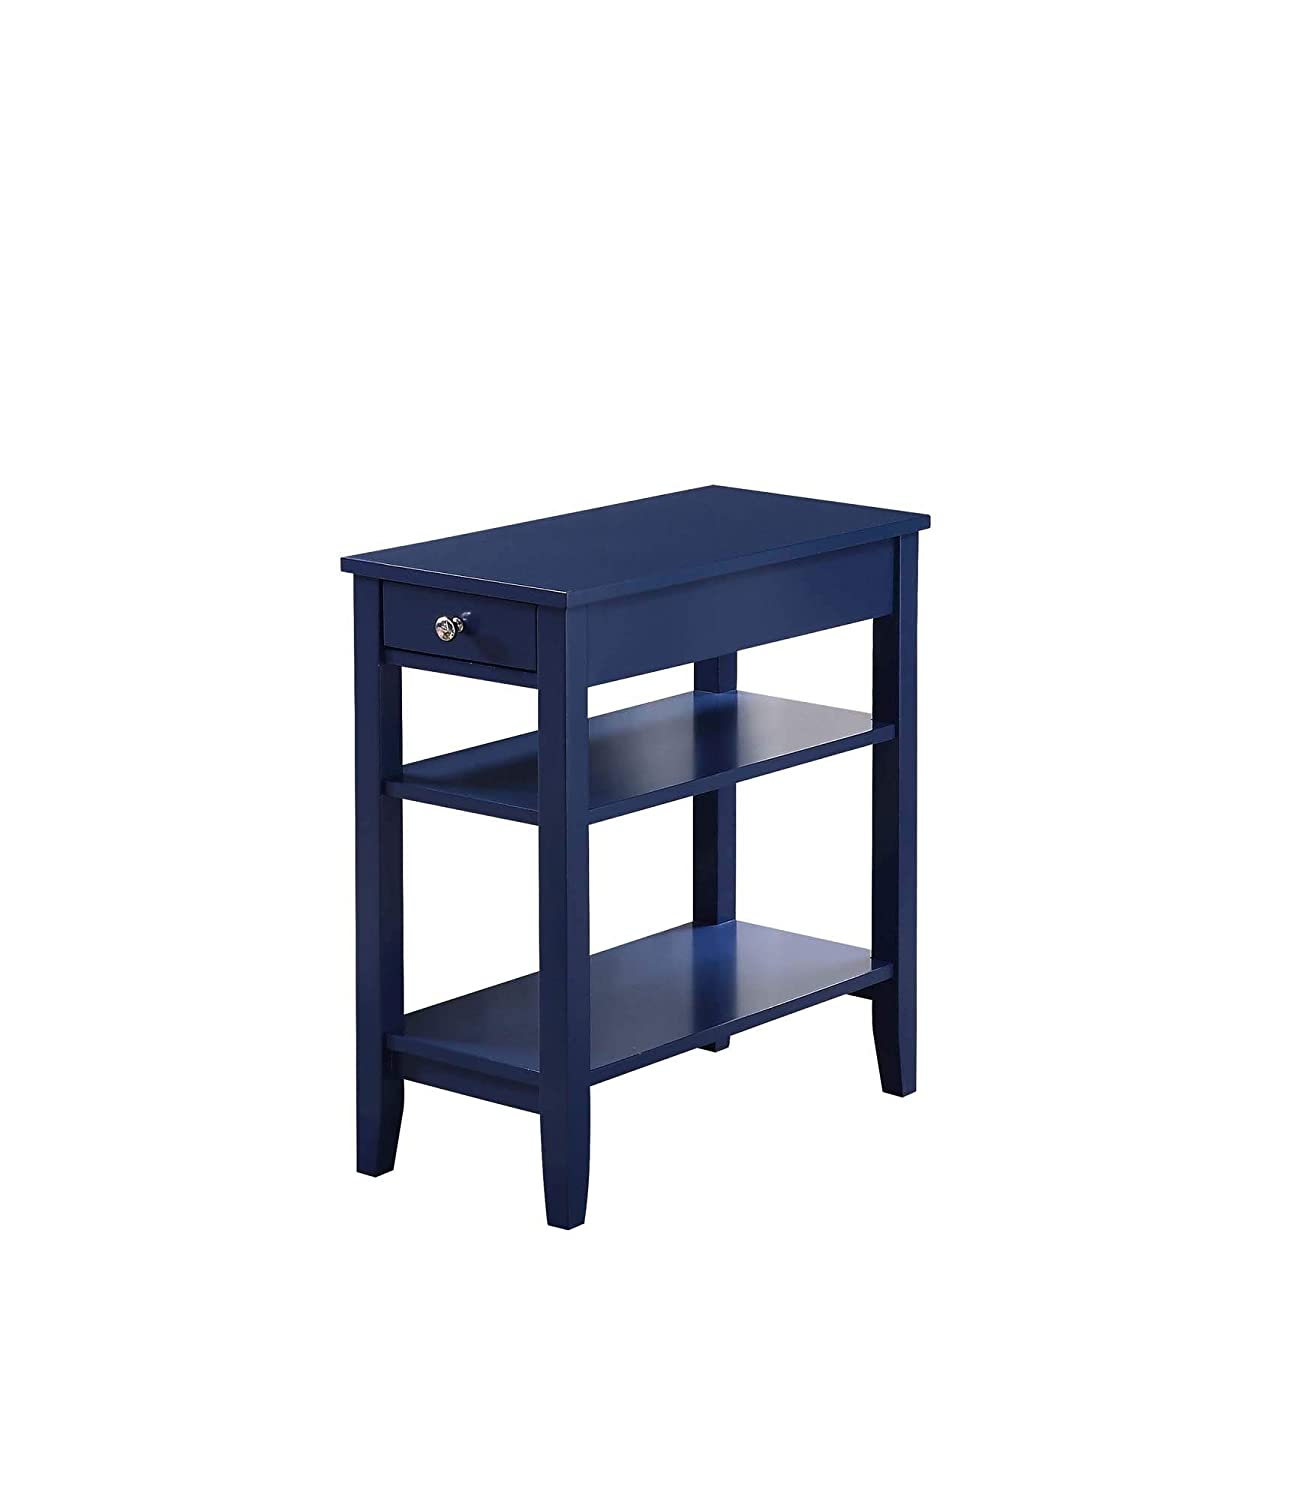 Convenience Concepts 7107159CBE American Heritage Three Tier Drawer End Table, Cobalt Blue